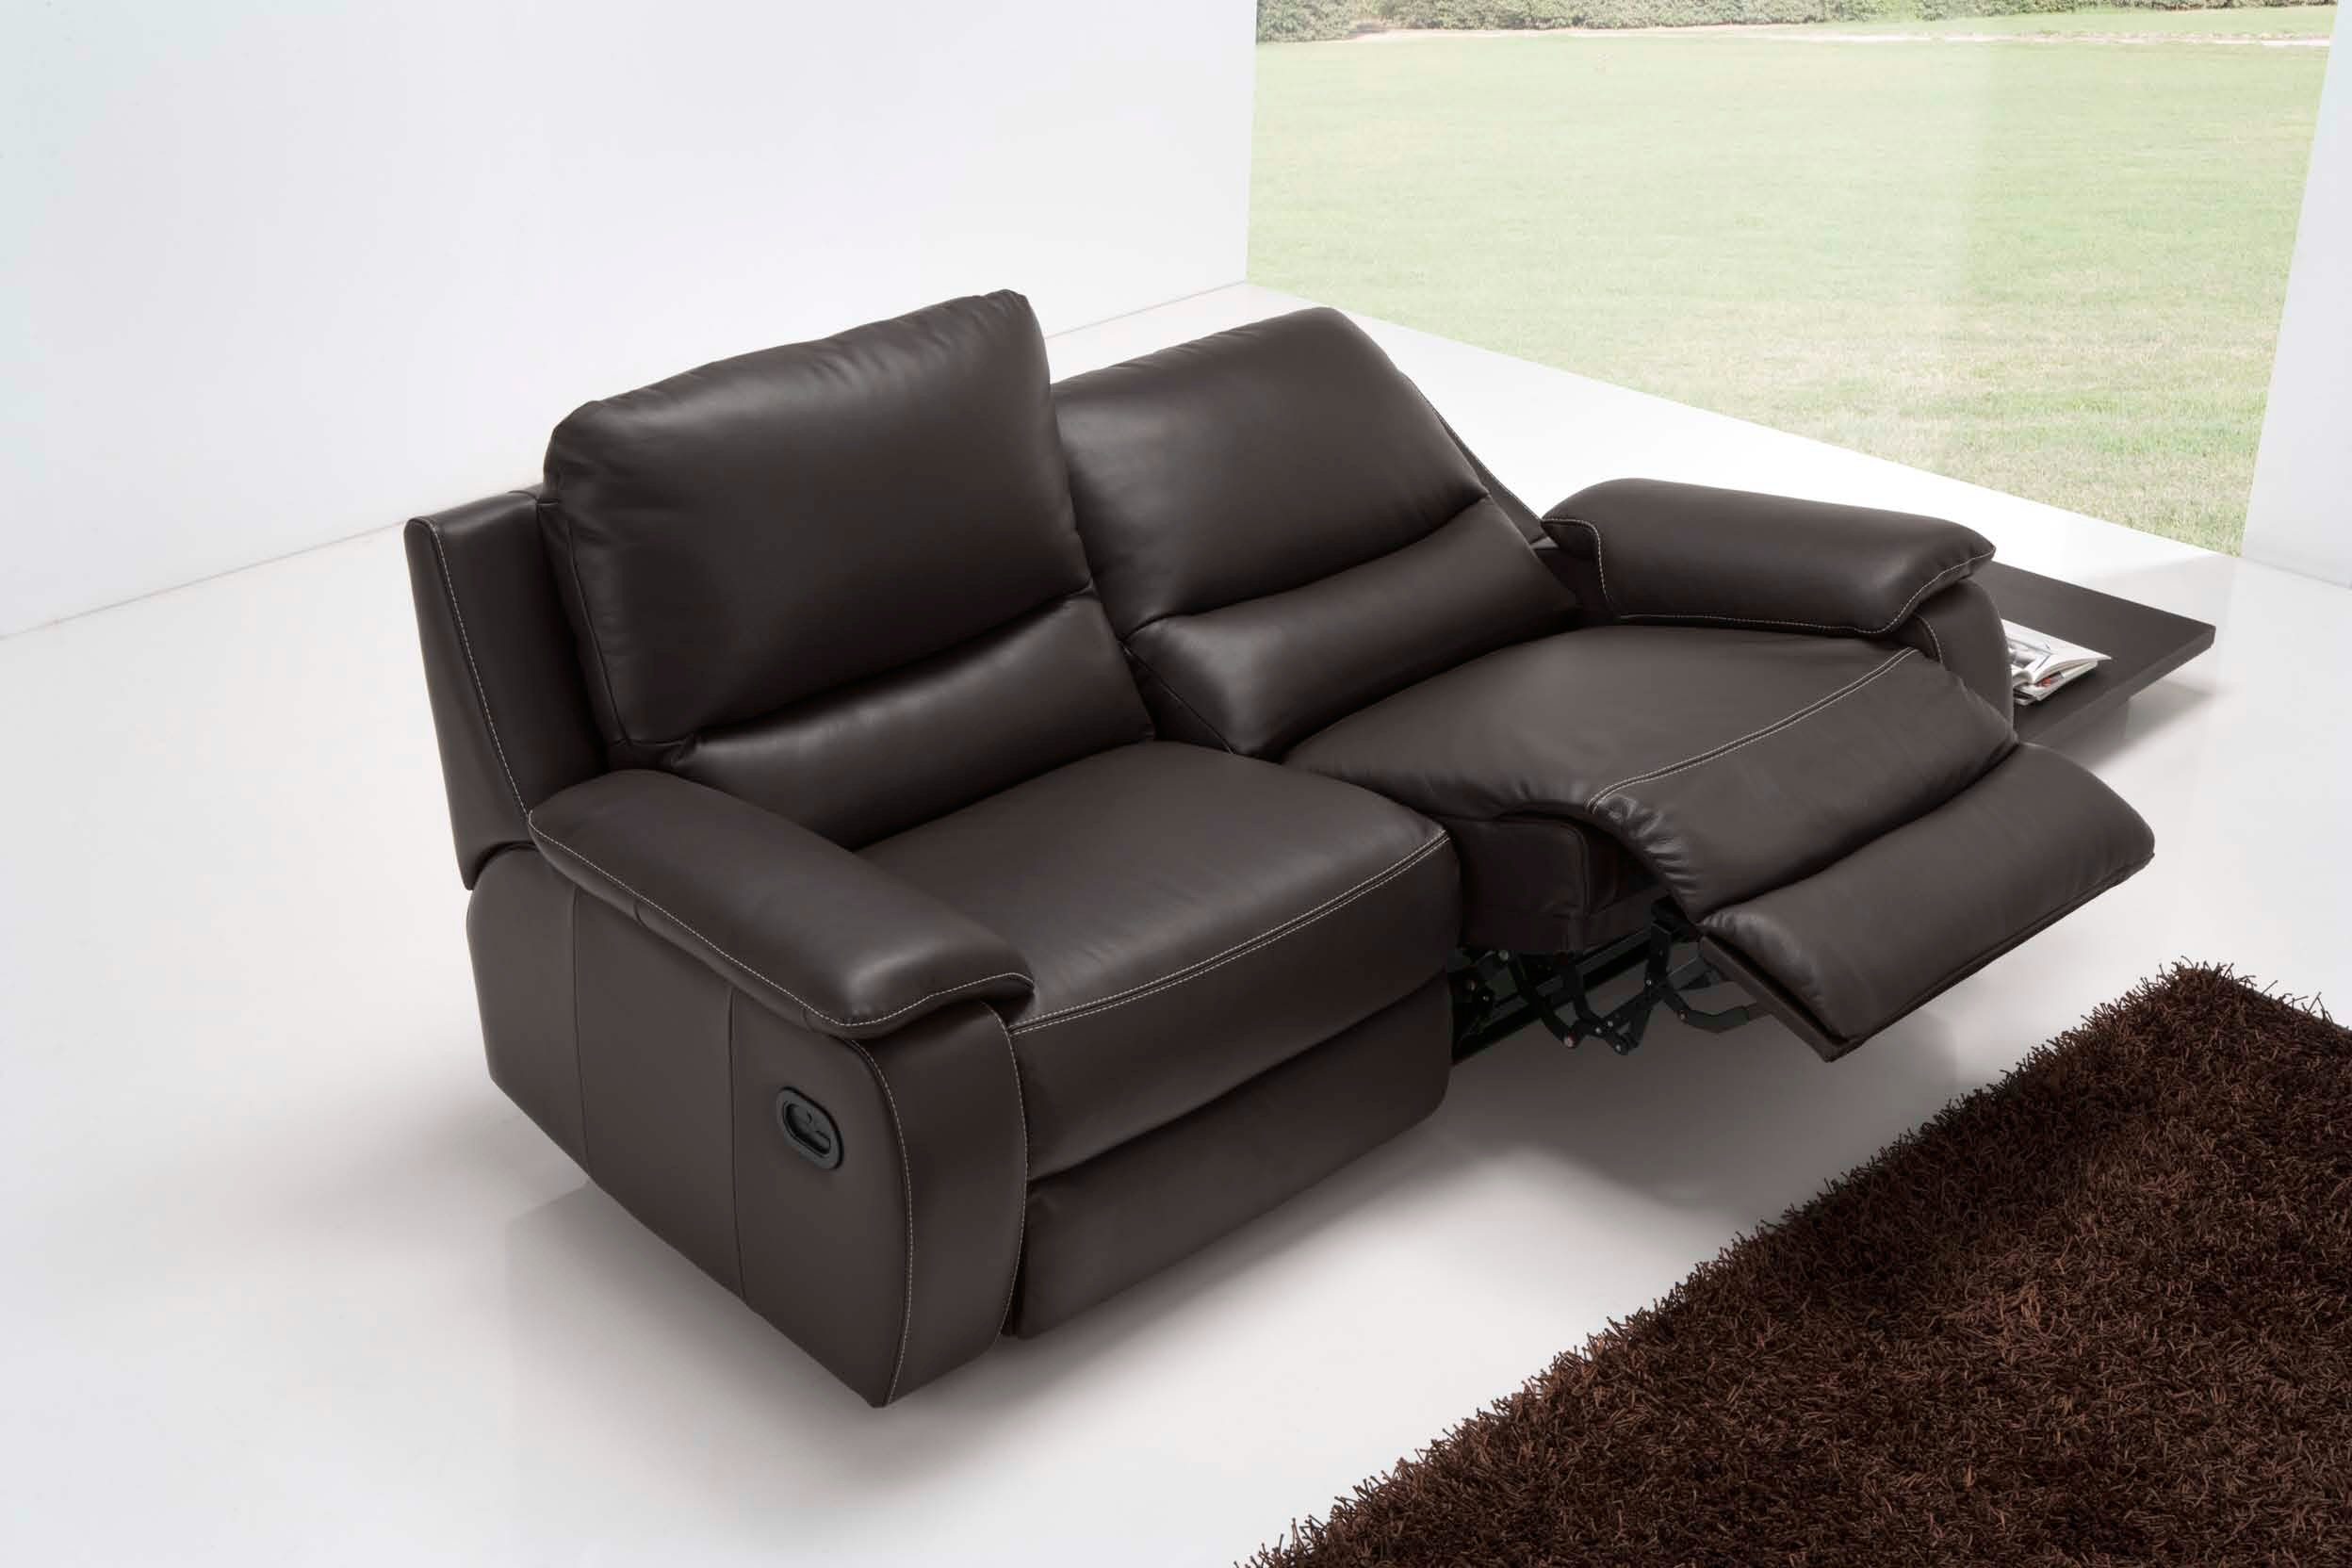 Premium 2 seater Double Recliner Sofa